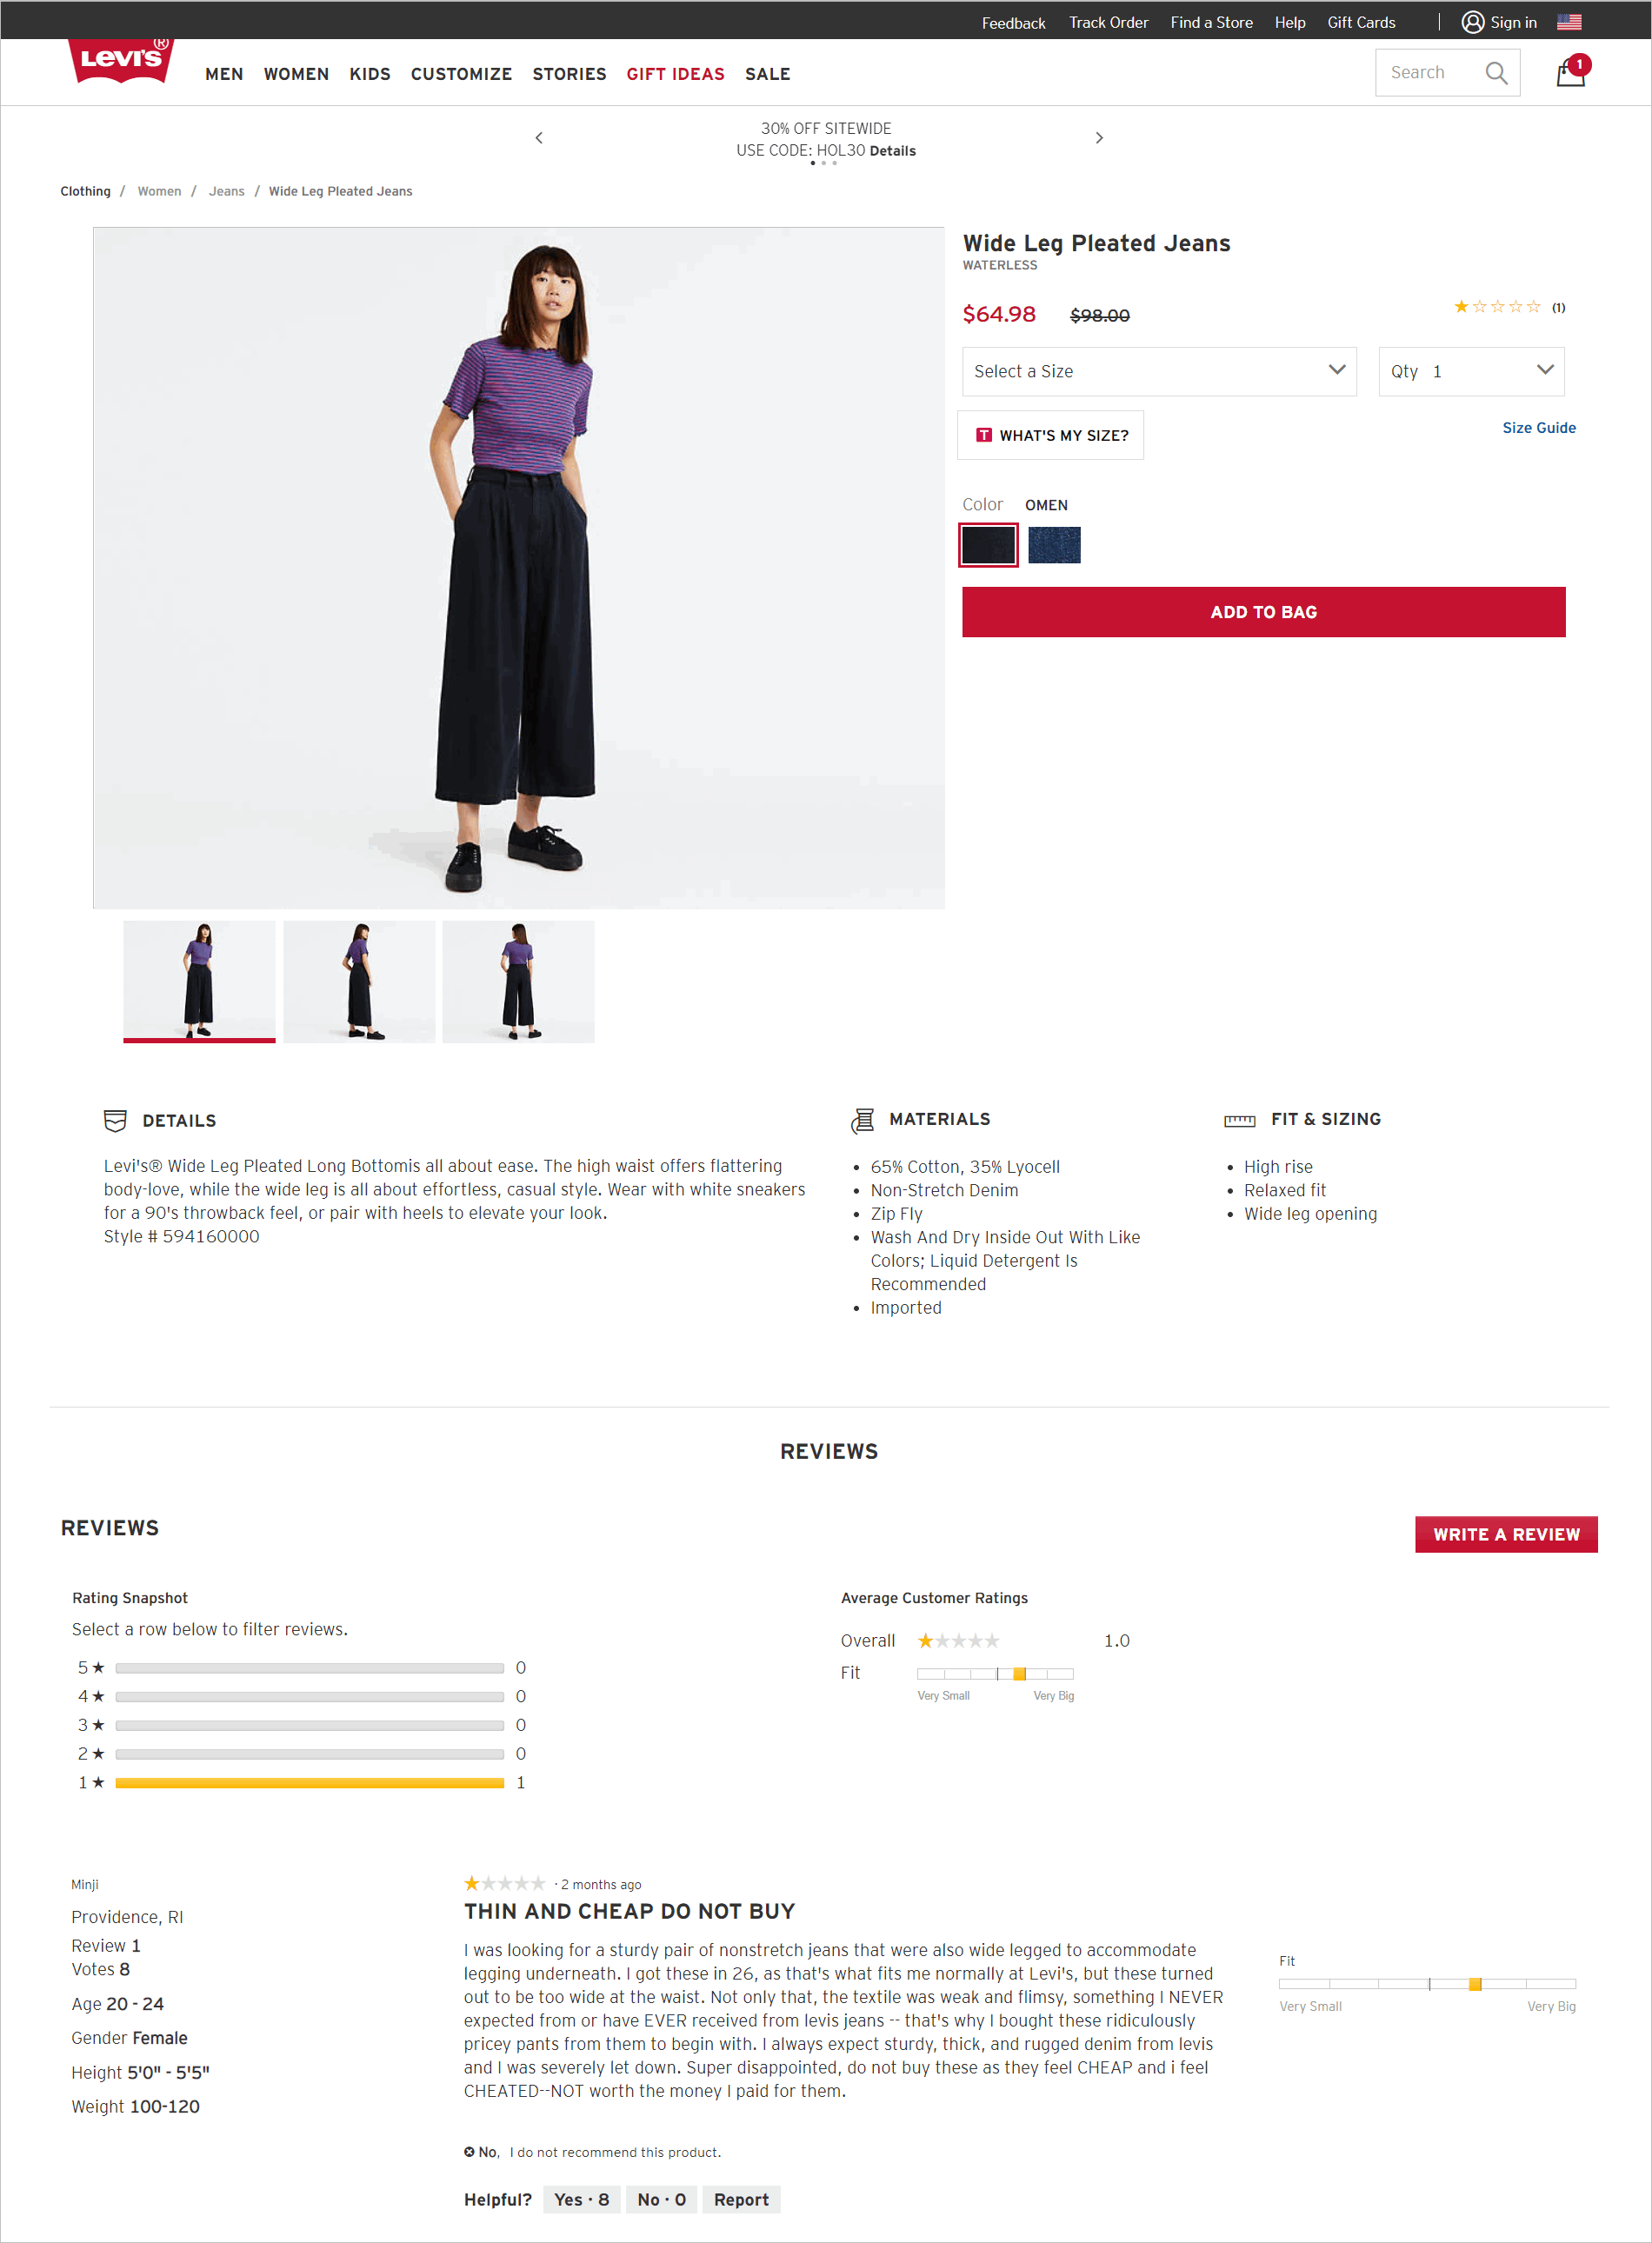 Levi.com product detail page which shows an average rating despite the product having only one review.